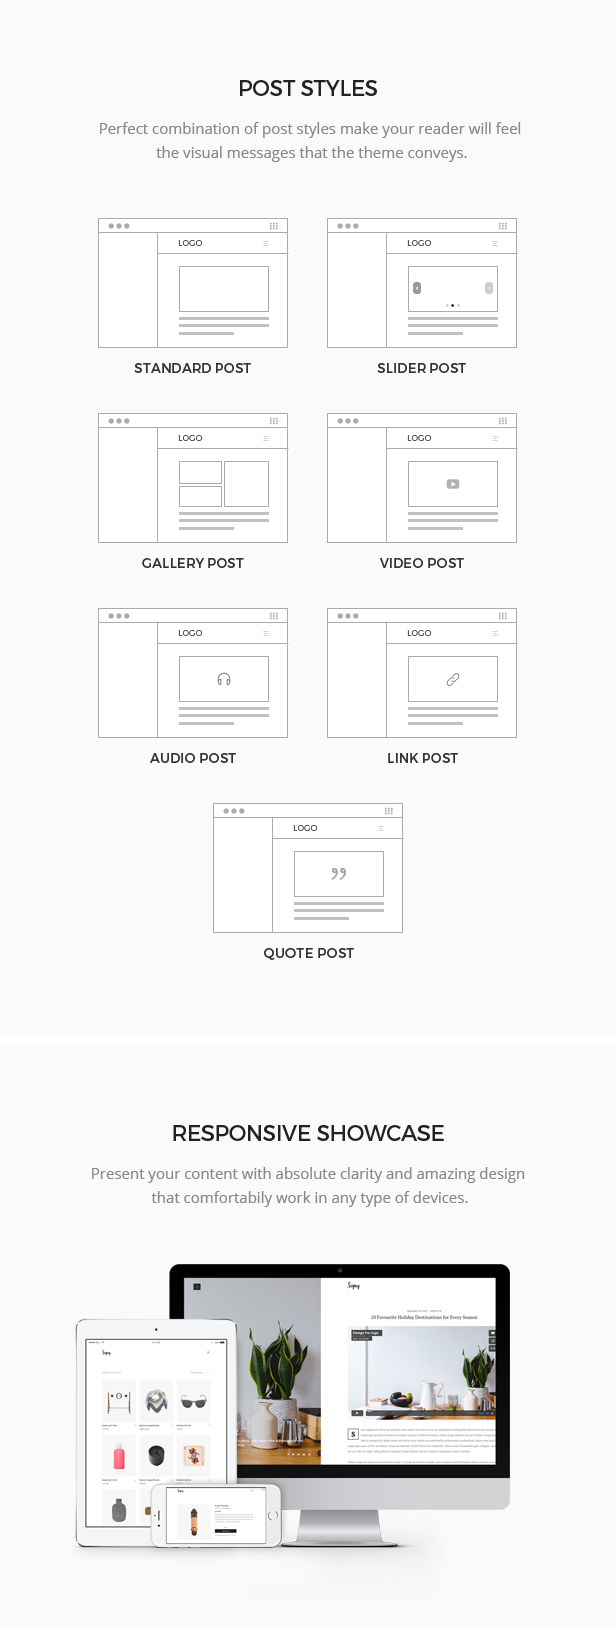 Signy Theme Layouts